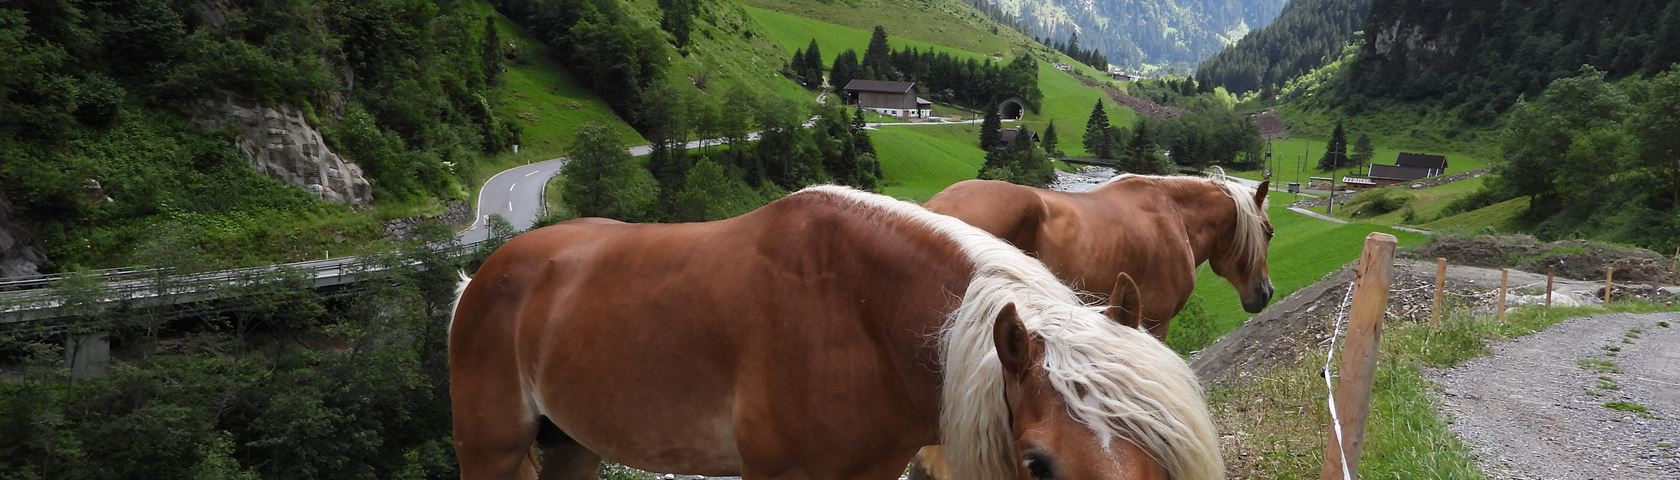 Horses on Austria Mountains